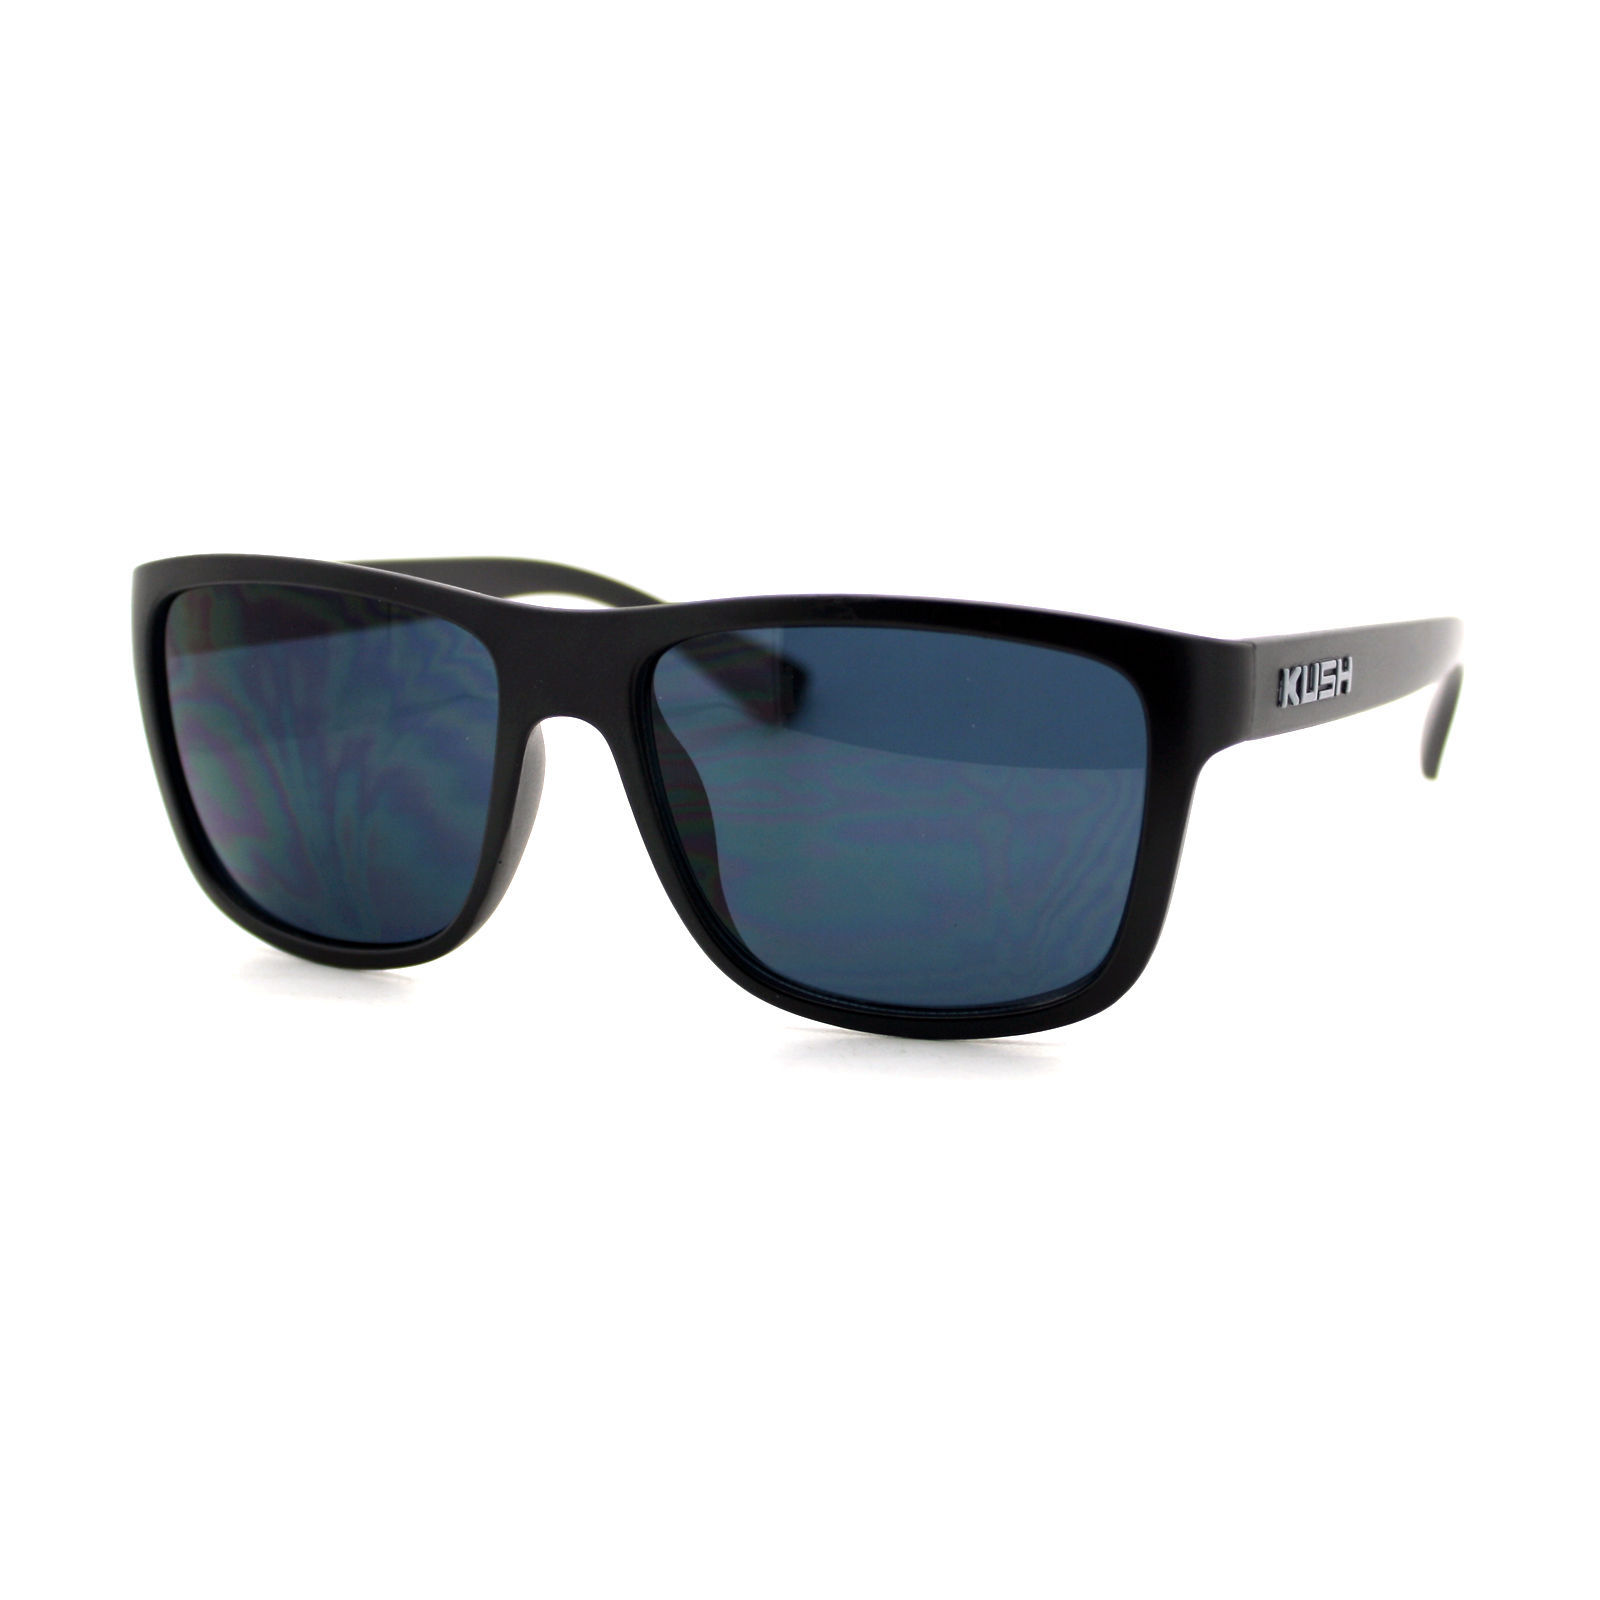 KUSH Sunglasses Square Rectangular Black Frame Unisex Dark Lens